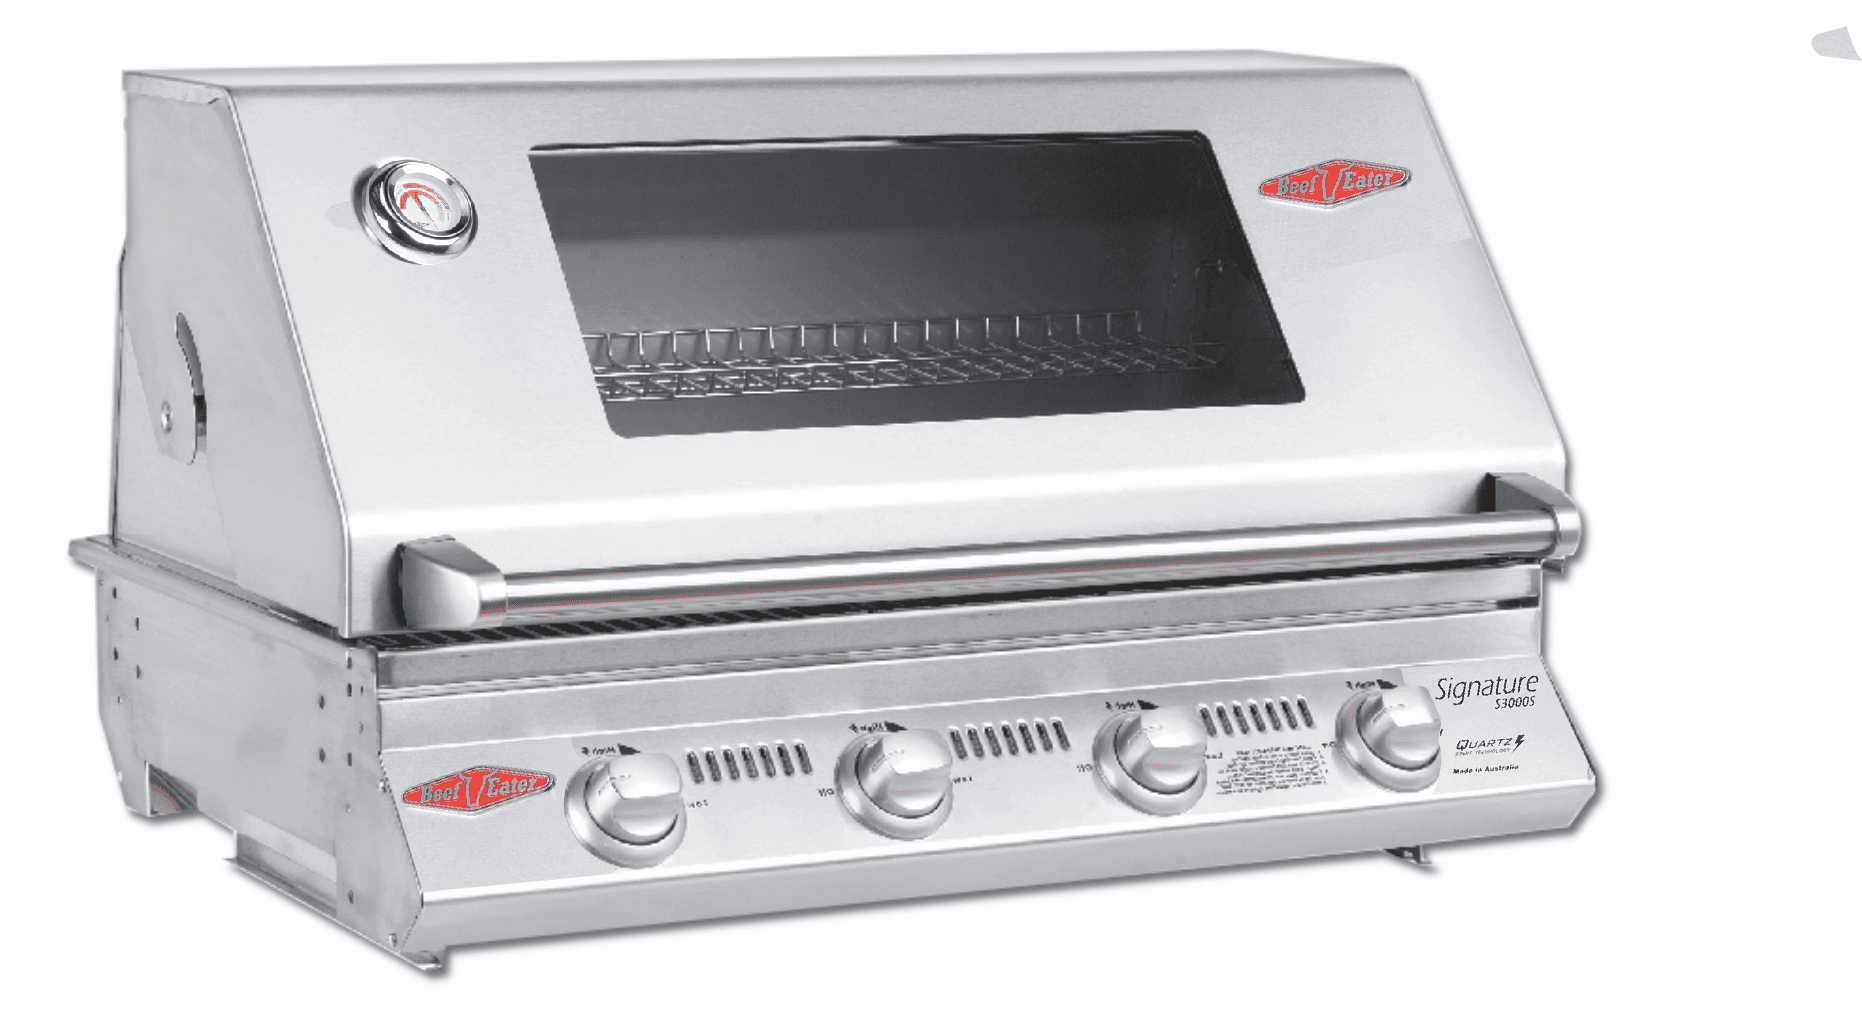 Beefeater 4 burner 13840 Signature Stainless Steel Propane